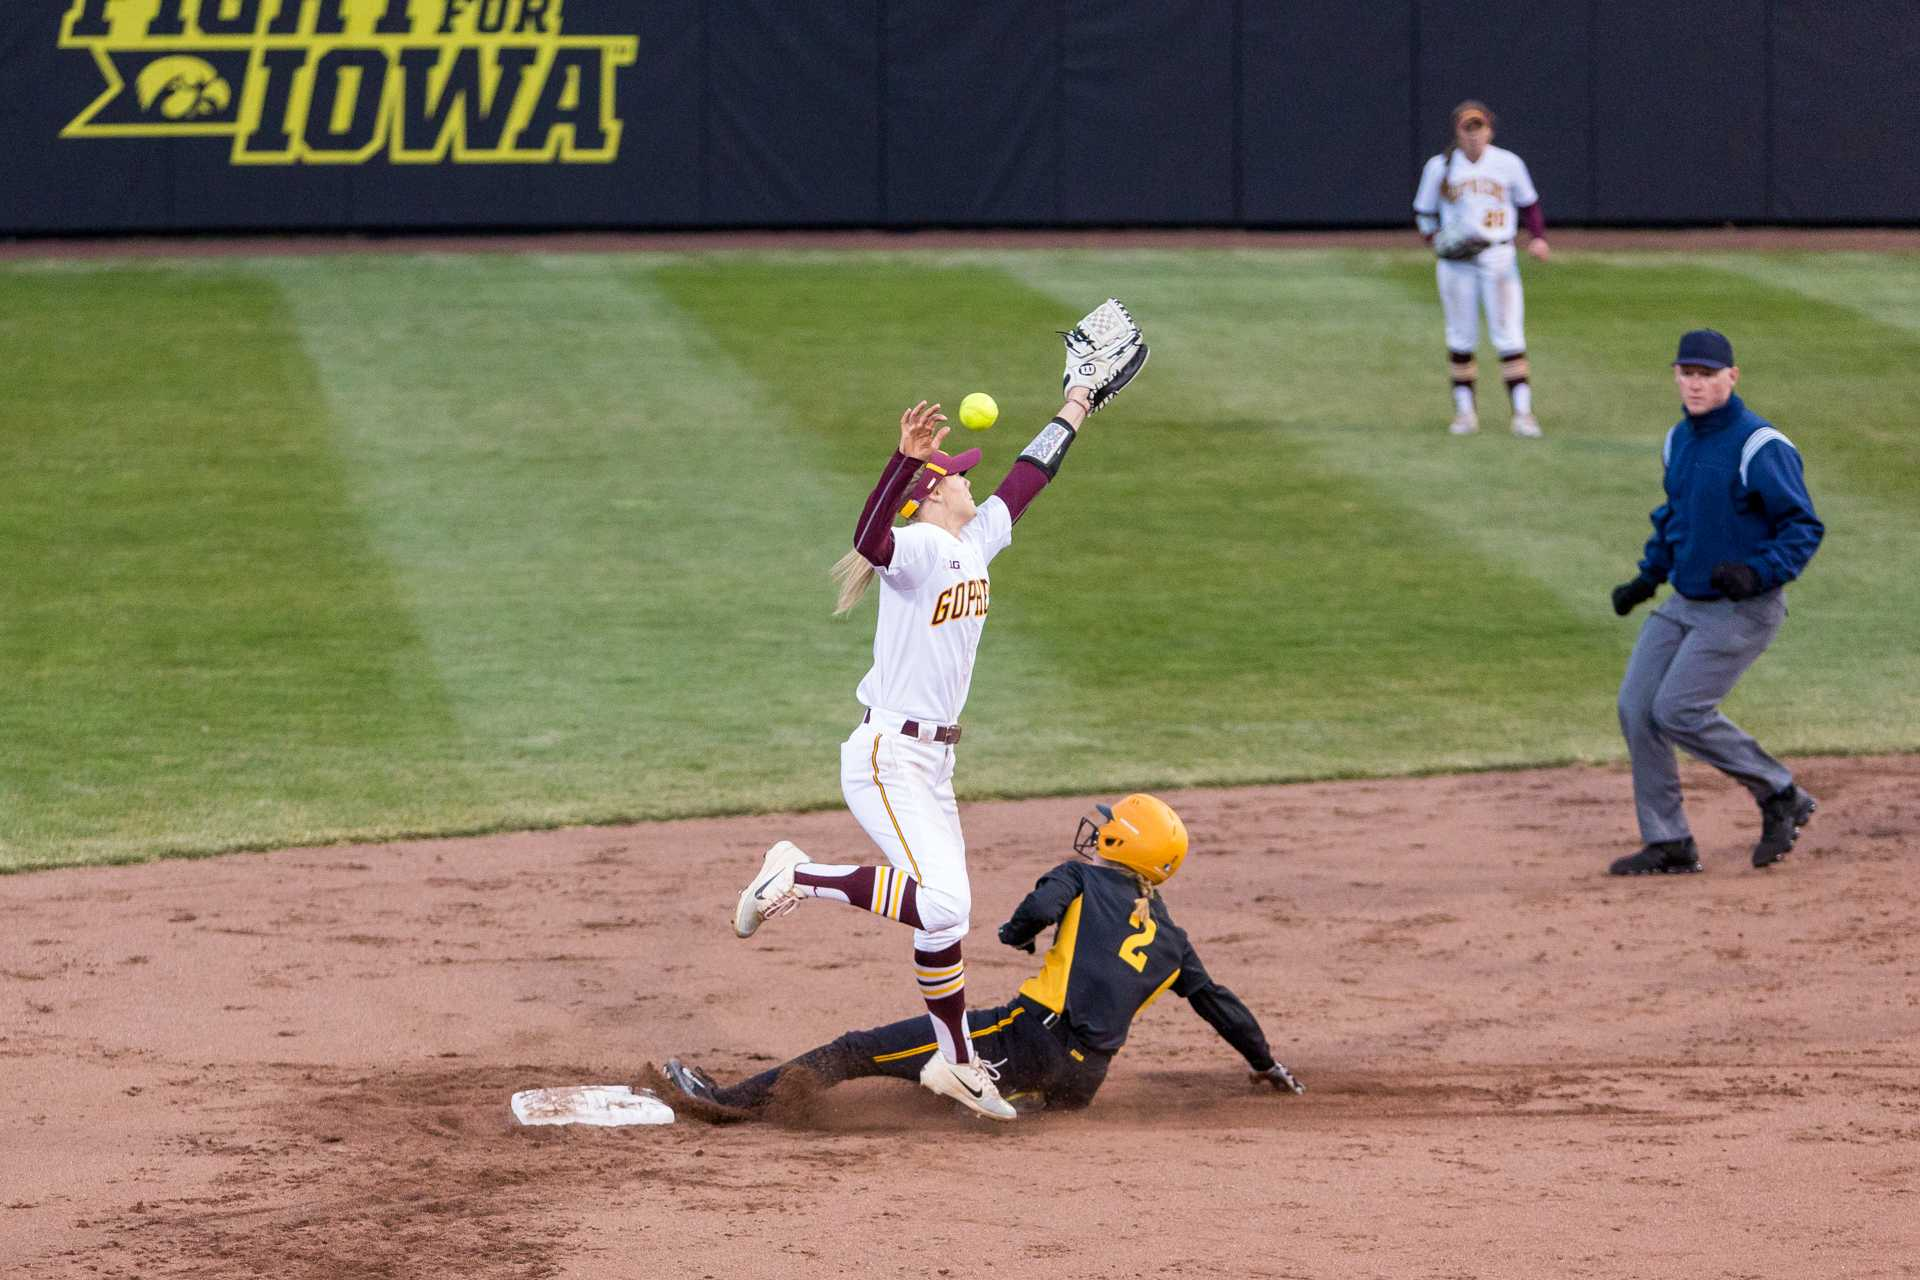 Photos: Softball vs Minnesota game 2